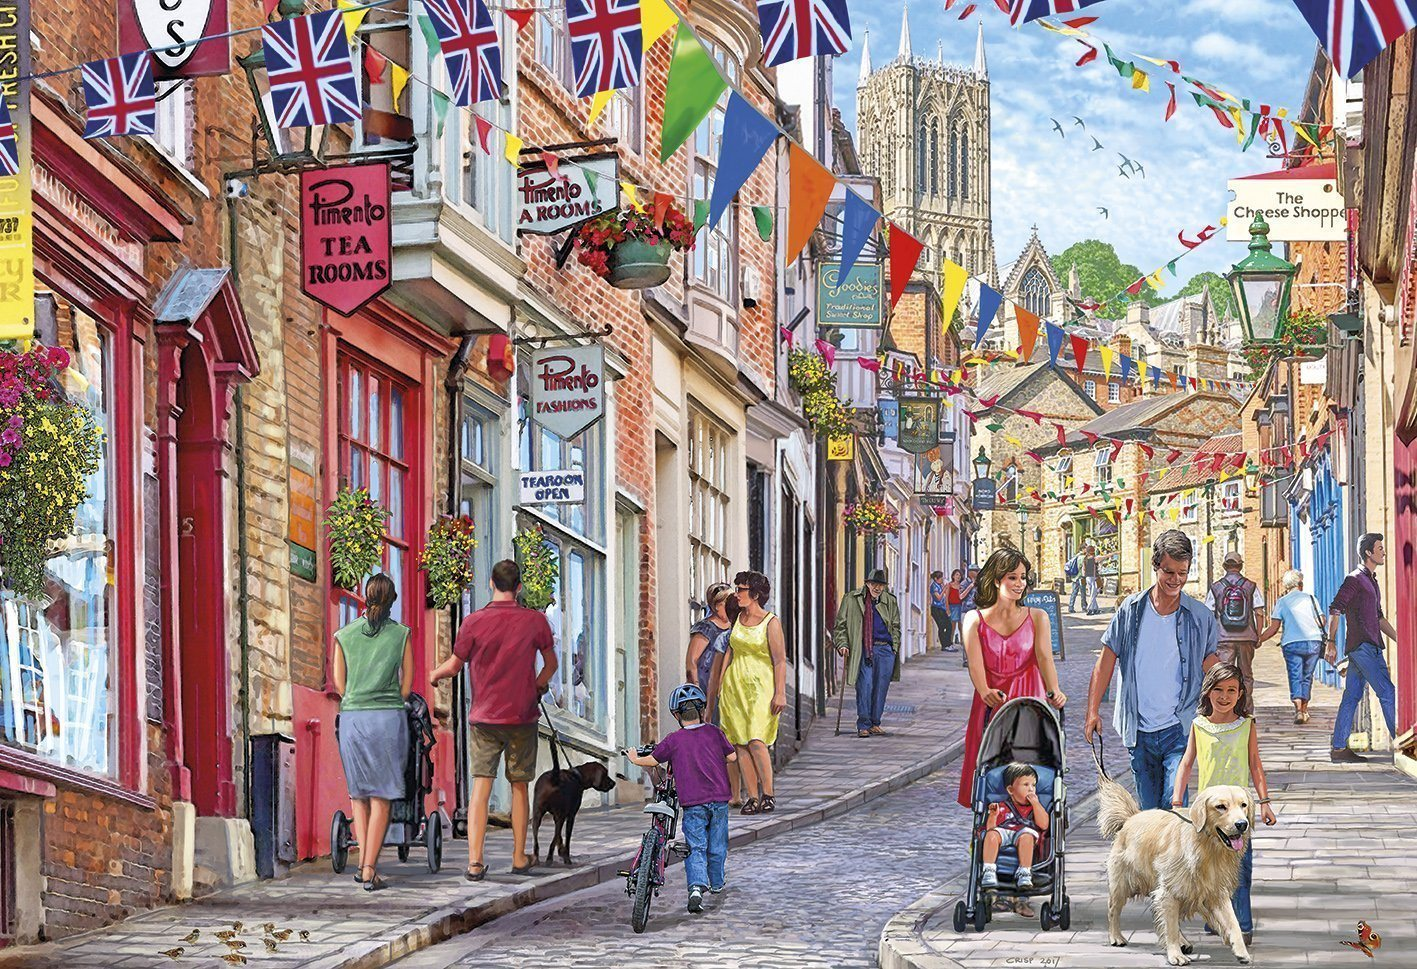 Jigsaw Puzzle - Steep Hill 1000 Piece Jigsaw Puzzle